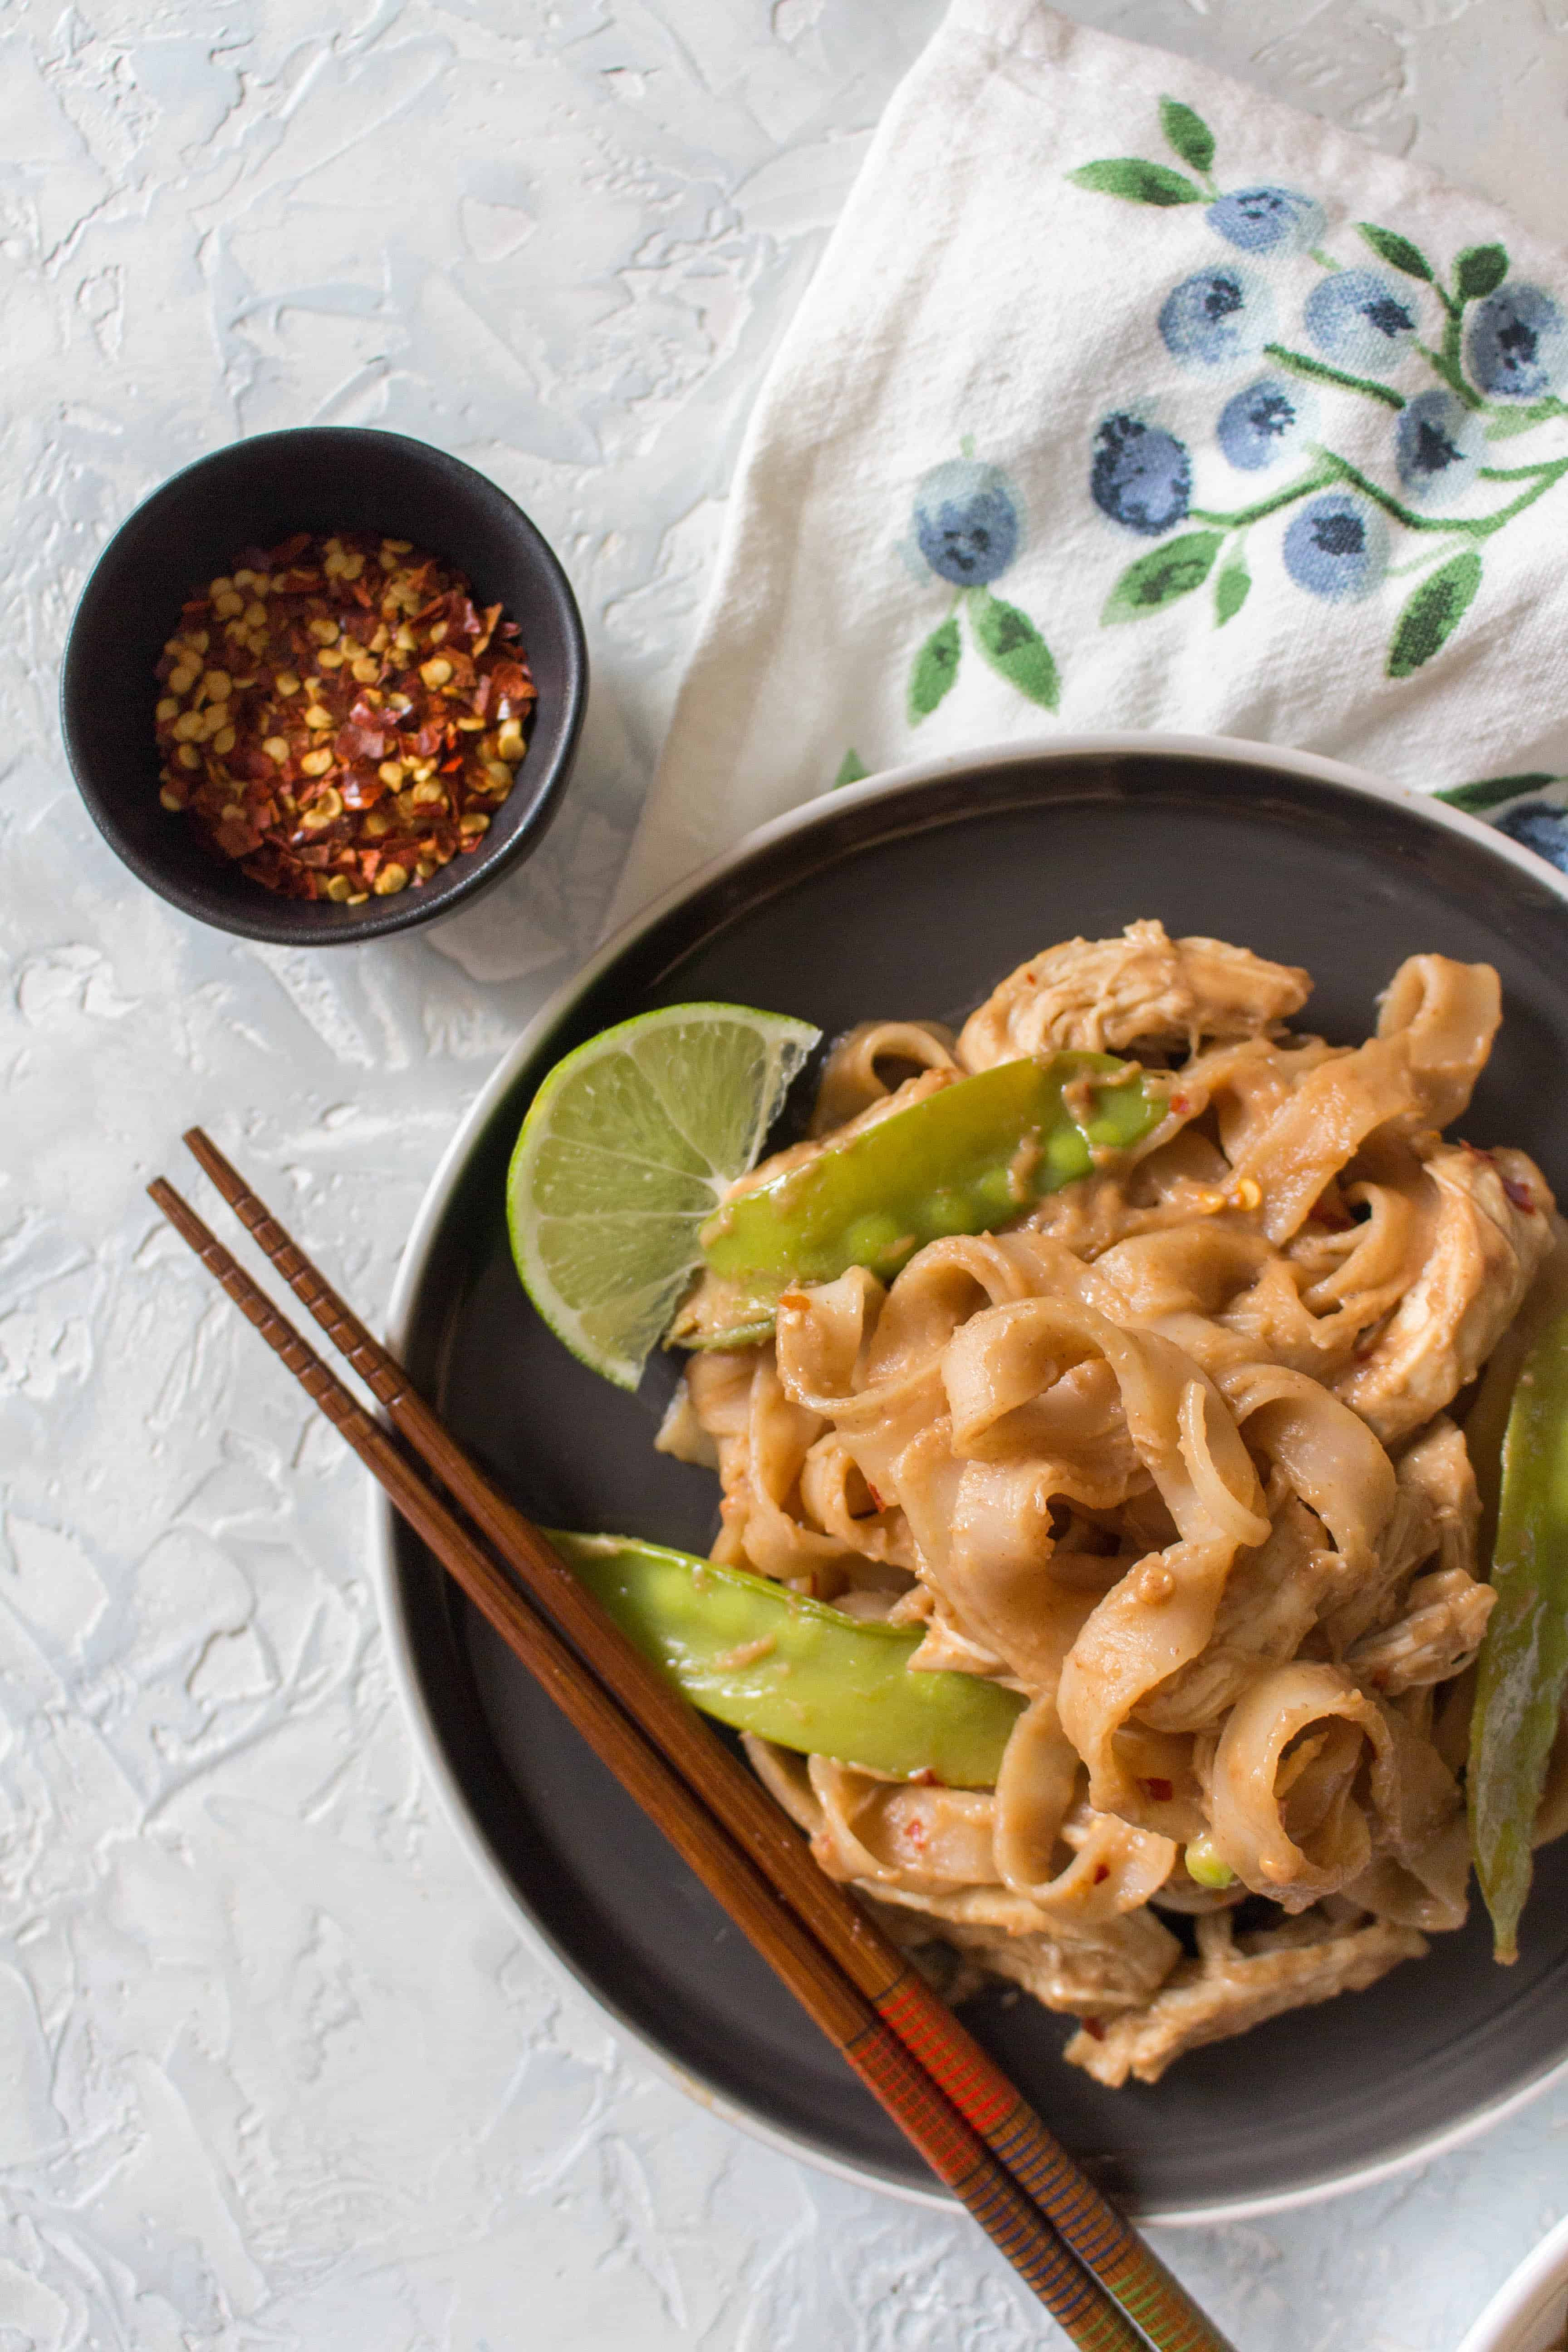 Chicken And Noodles Instant Pot  Healthy Instant Pot Thai Peanut Chicken and Noodles